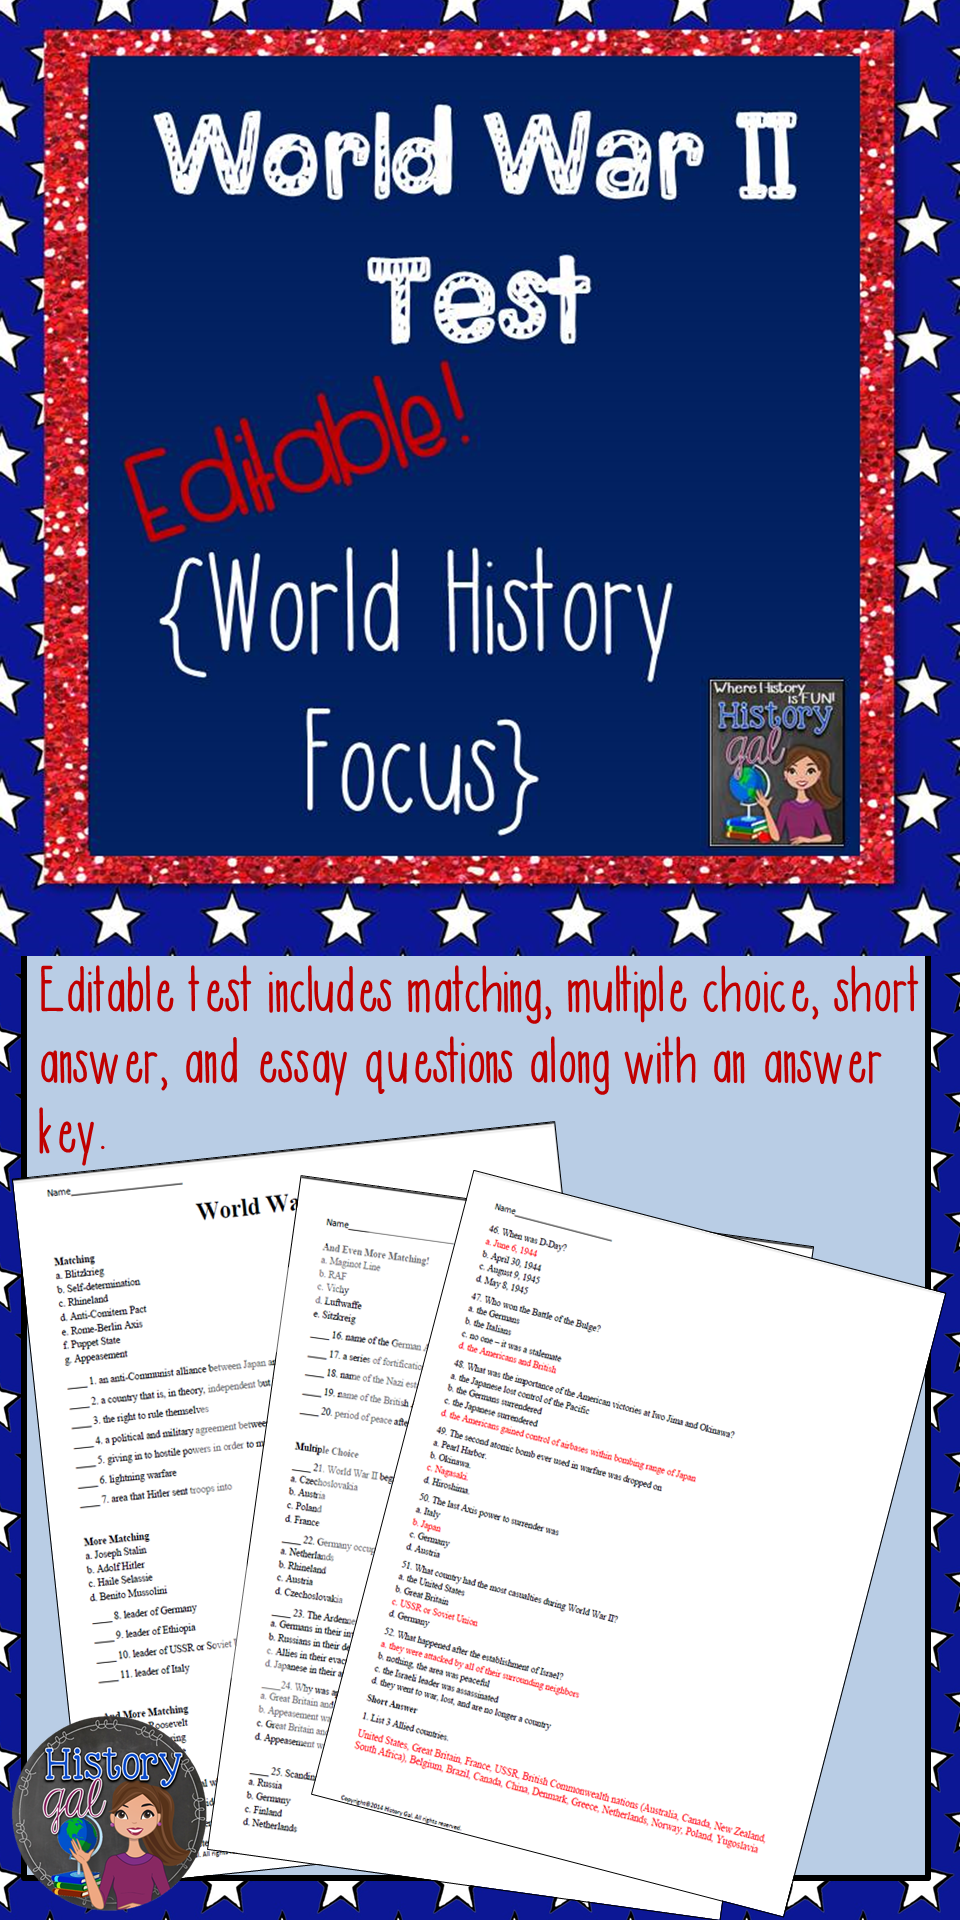 world war ii essay exam 2 World war ii essay: historical summary  world war 2: history paper at the end of world war i the victorious nations formed the league of nations for the purpose of airing international disputes, and of mobilizing its members for a collective effort to keep the peace in the event of aggression by any nation against another or of a breach of the peace treaties.